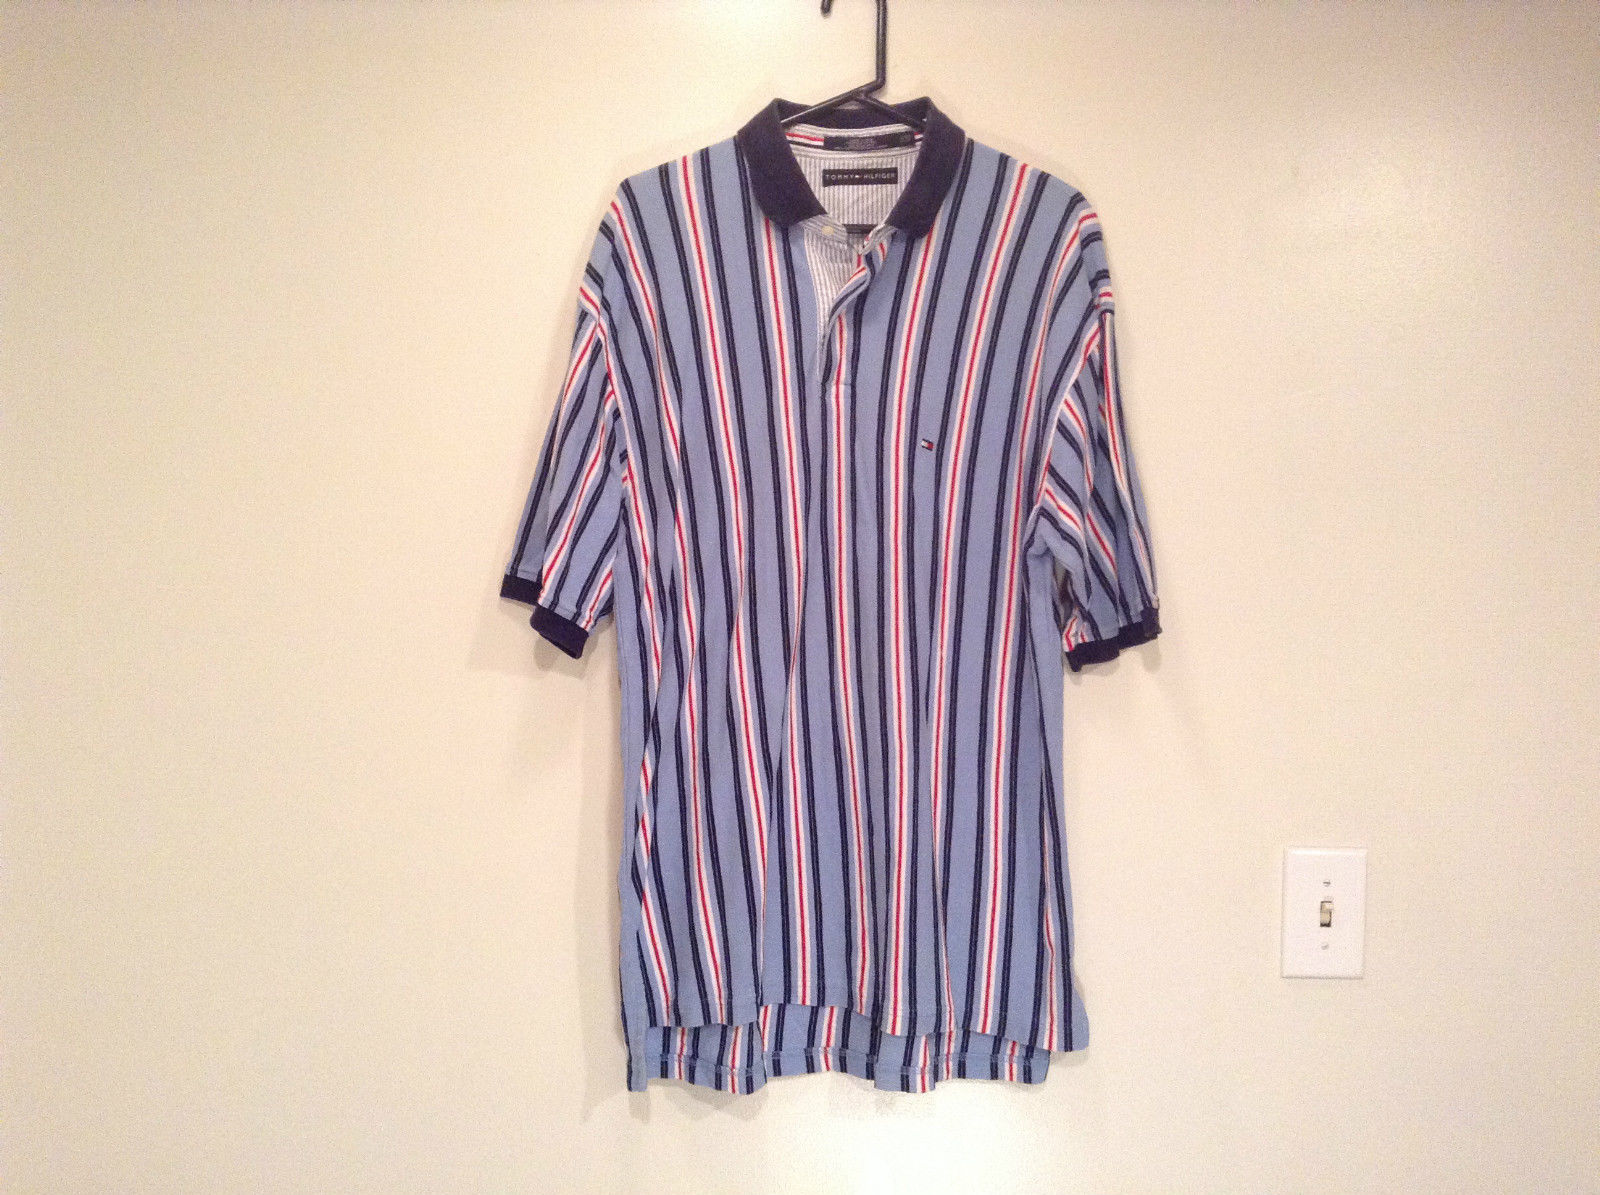 Primary image for Tommy Hilfiger Size XXL 100 Percent Cotton Short Sleeve Blue with Stripes Shirt